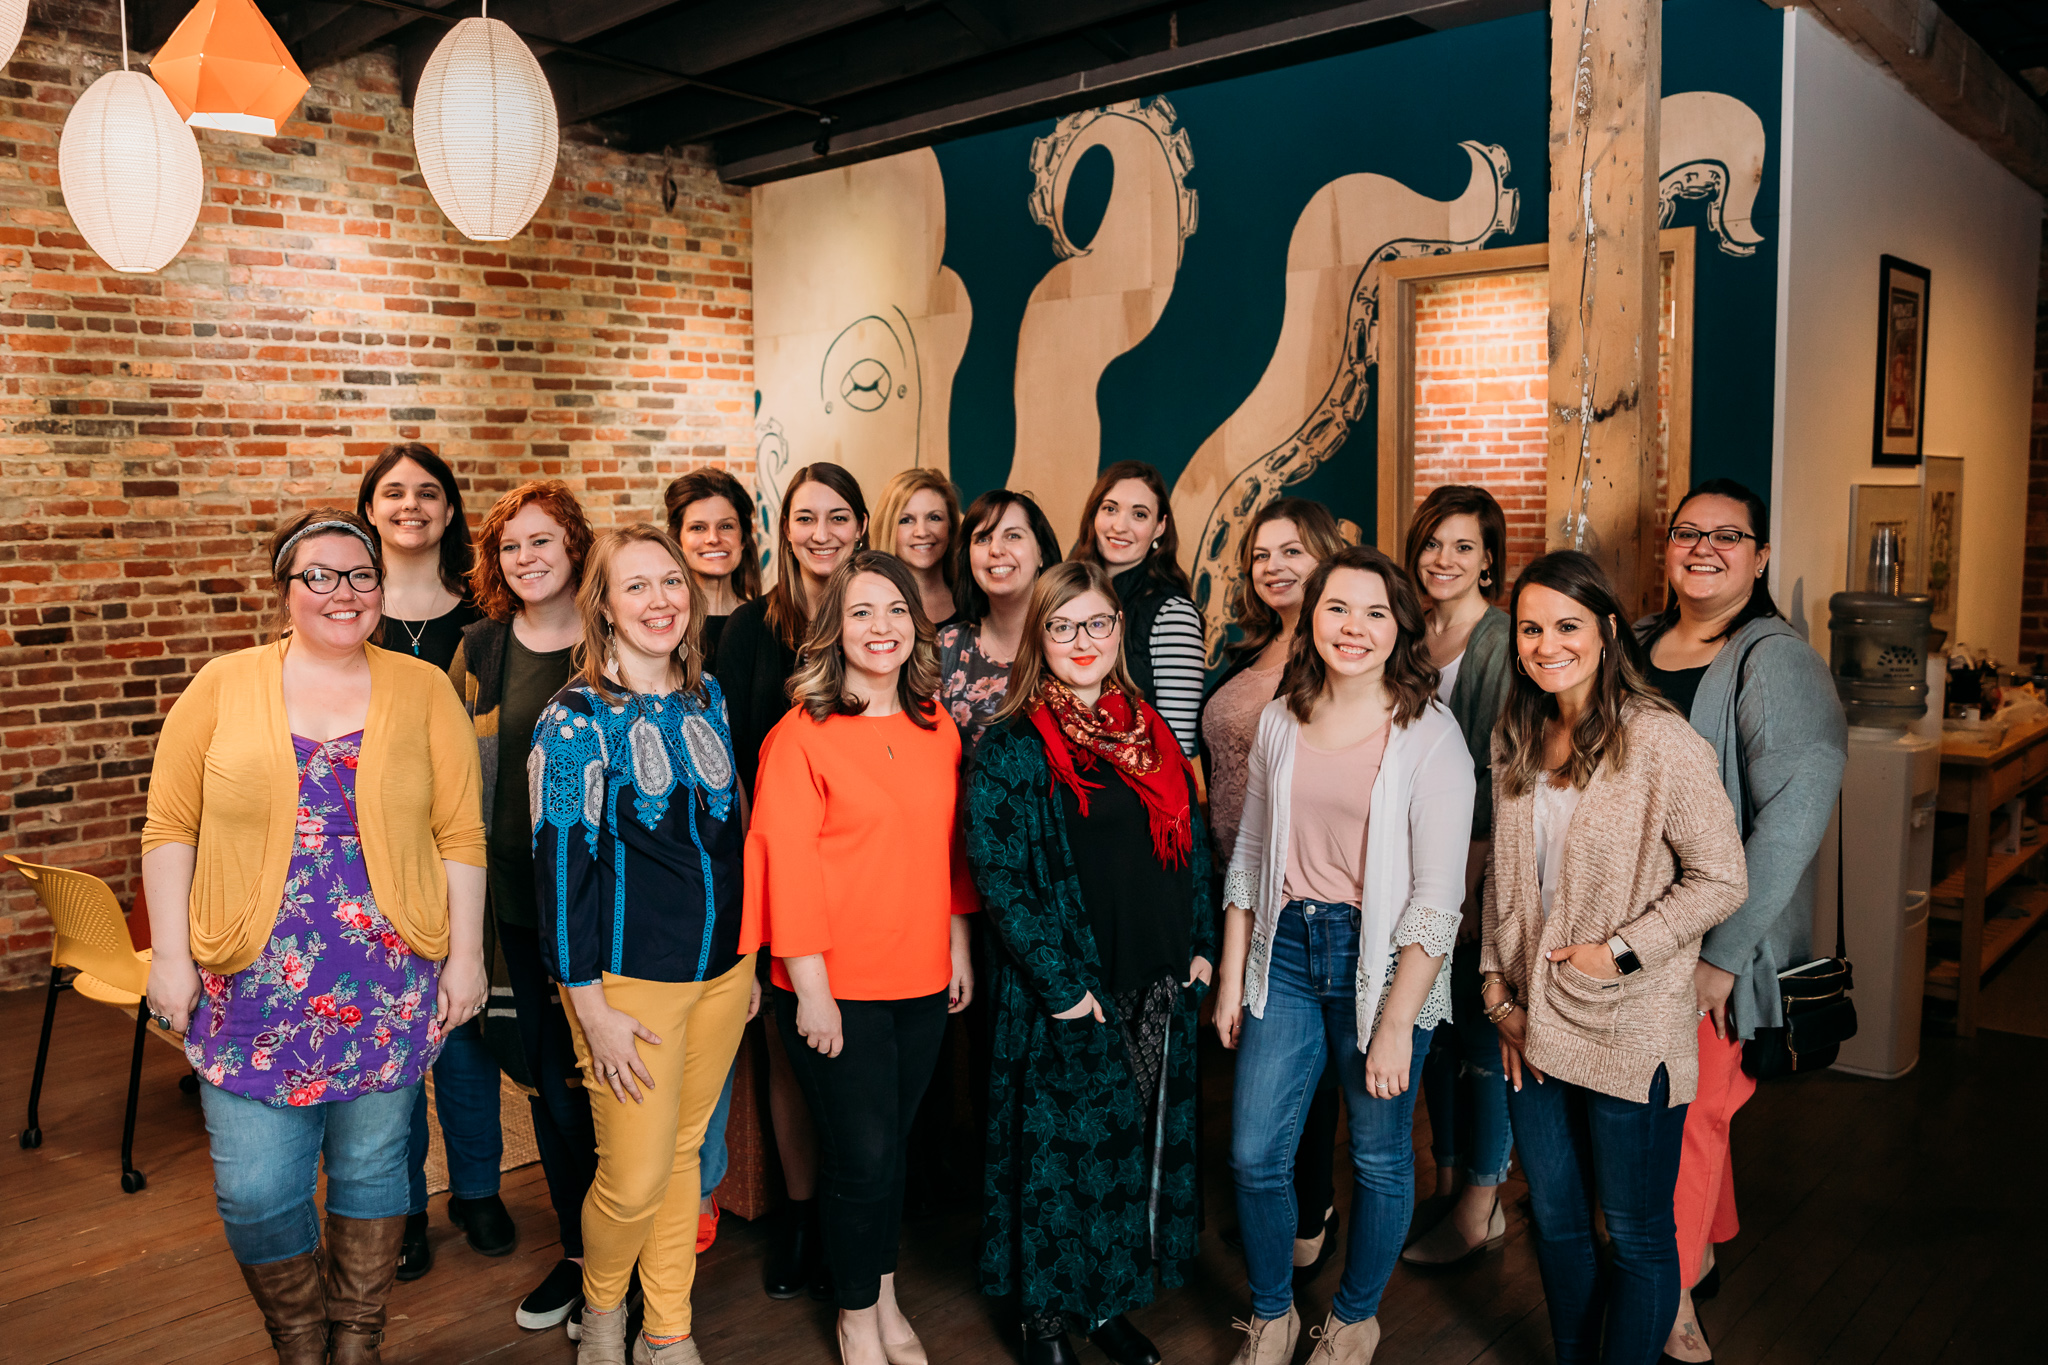 Over 15 women gathered for the Freelancing Females Brunch, representing many unique careers including illustration, photography, therapy, social media marketing, blogging, and design.